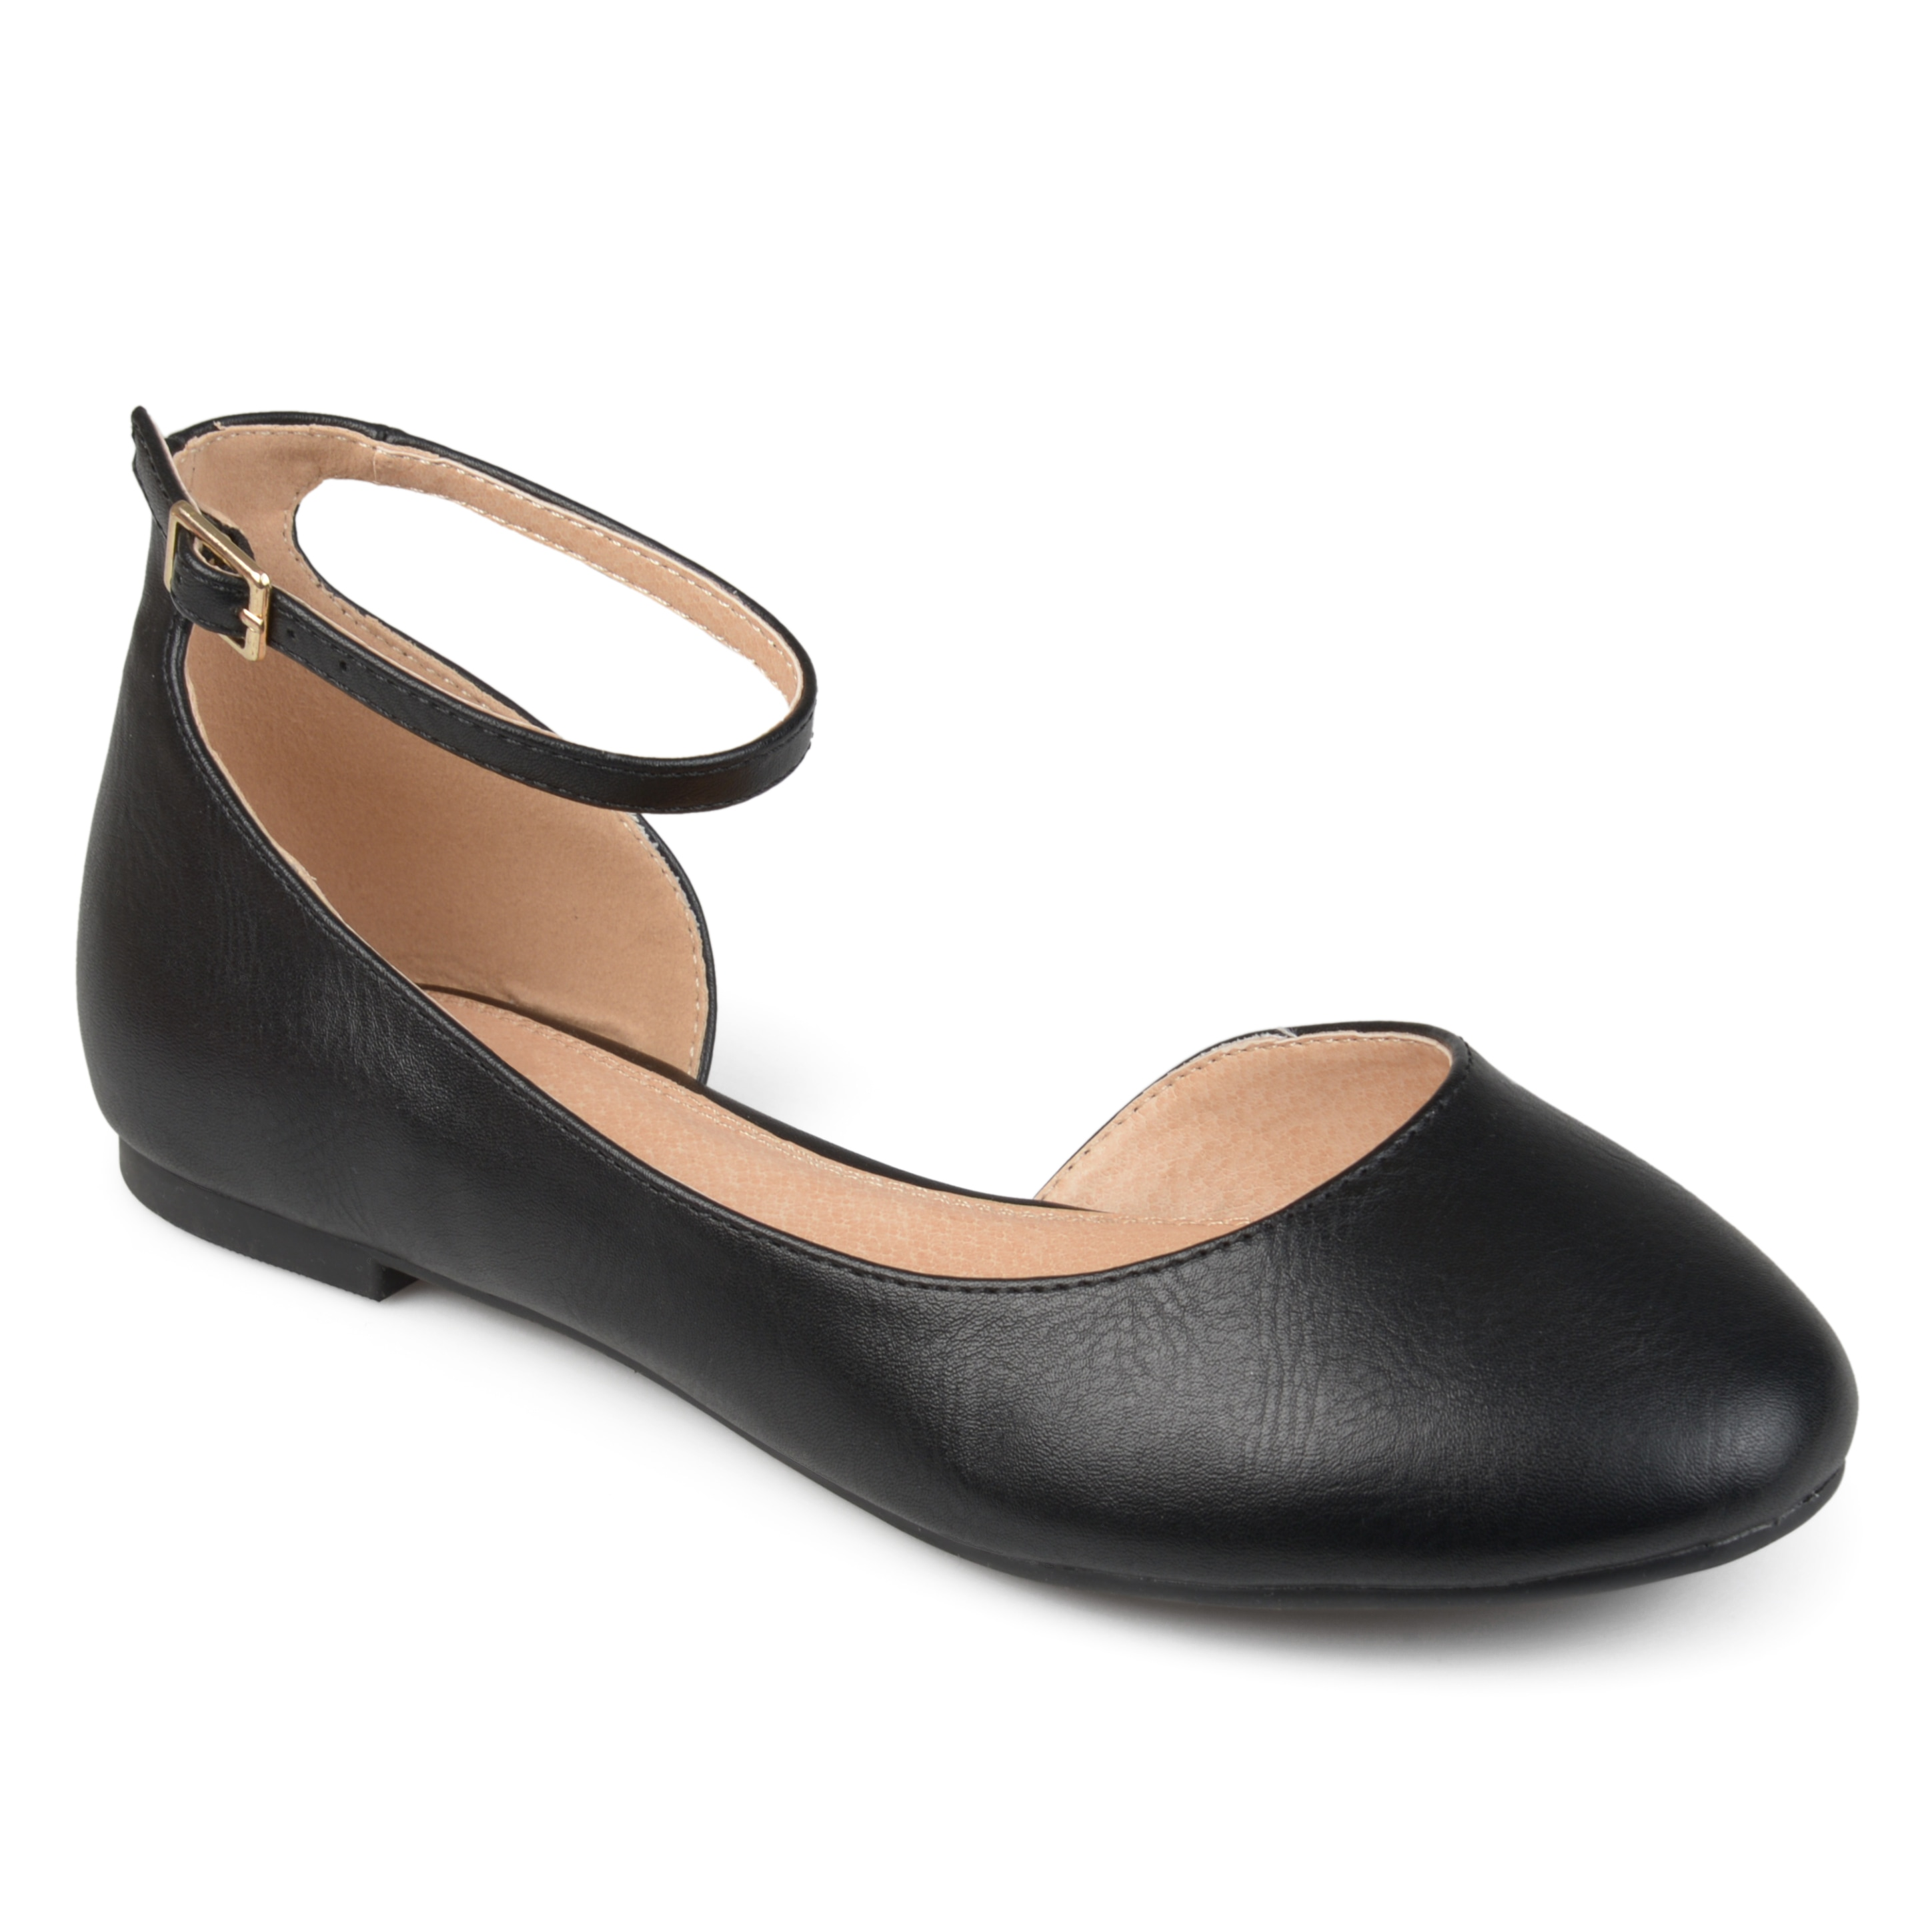 f7a383211eb2 Journee Collection Women s  Astley  Wide Width D orsay Ankle Strap Round  Toe Flats